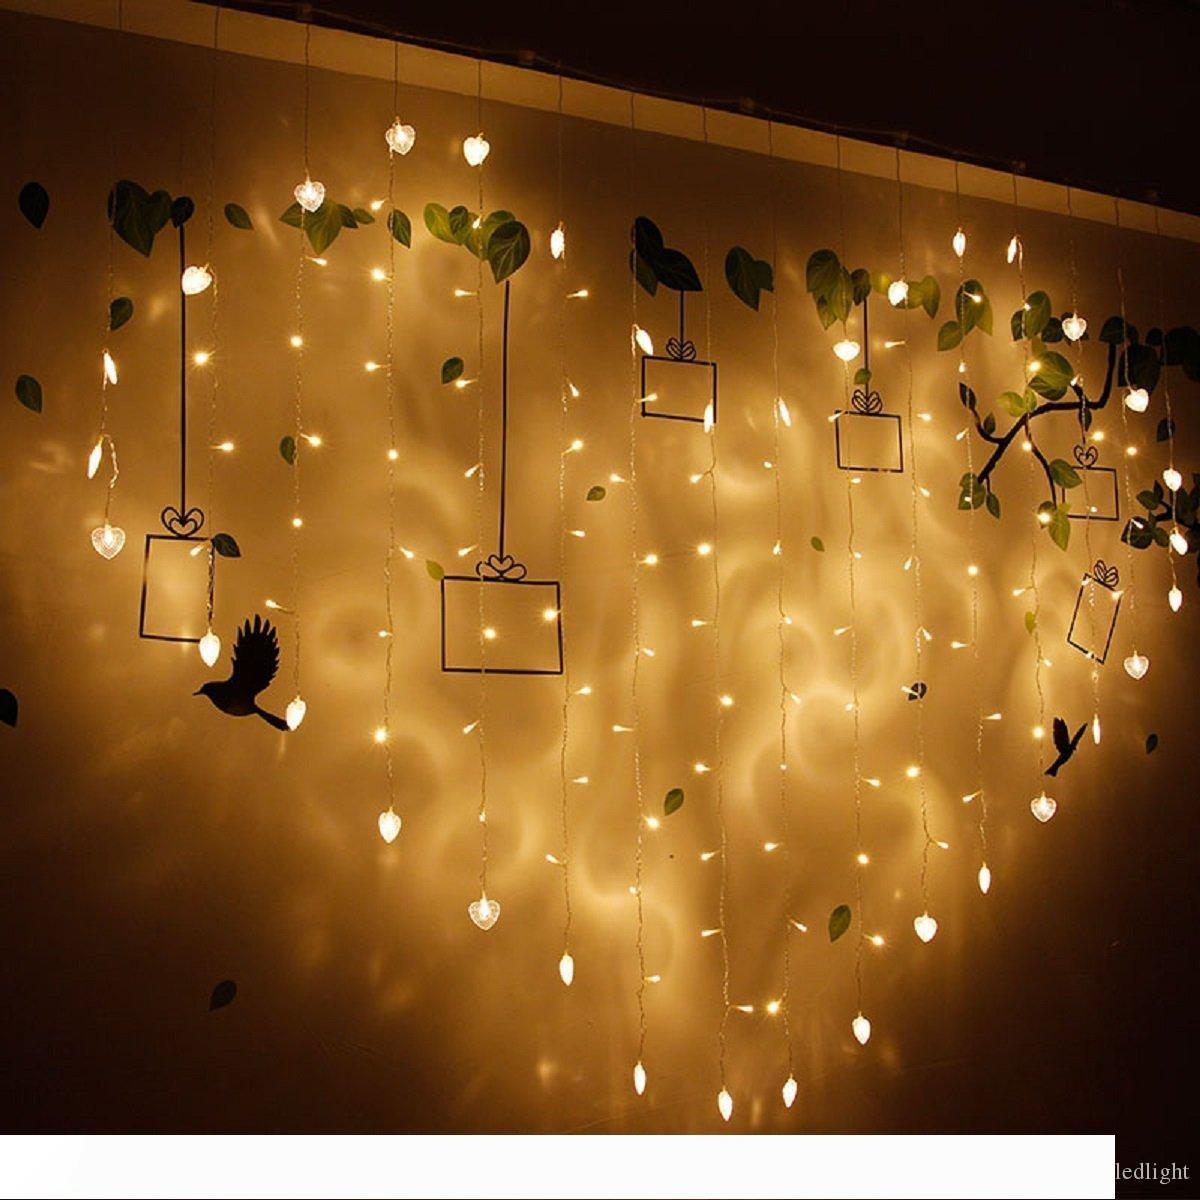 2m 1 5m Love Shape Led String Lights Curtain Wedding Hotel Valentines Day Holiday Lightings Luces Home And Garden Lights Outdoor Bulb String Lights String Of Light Bulbs From Misan121314 38 05 Dhgate Com